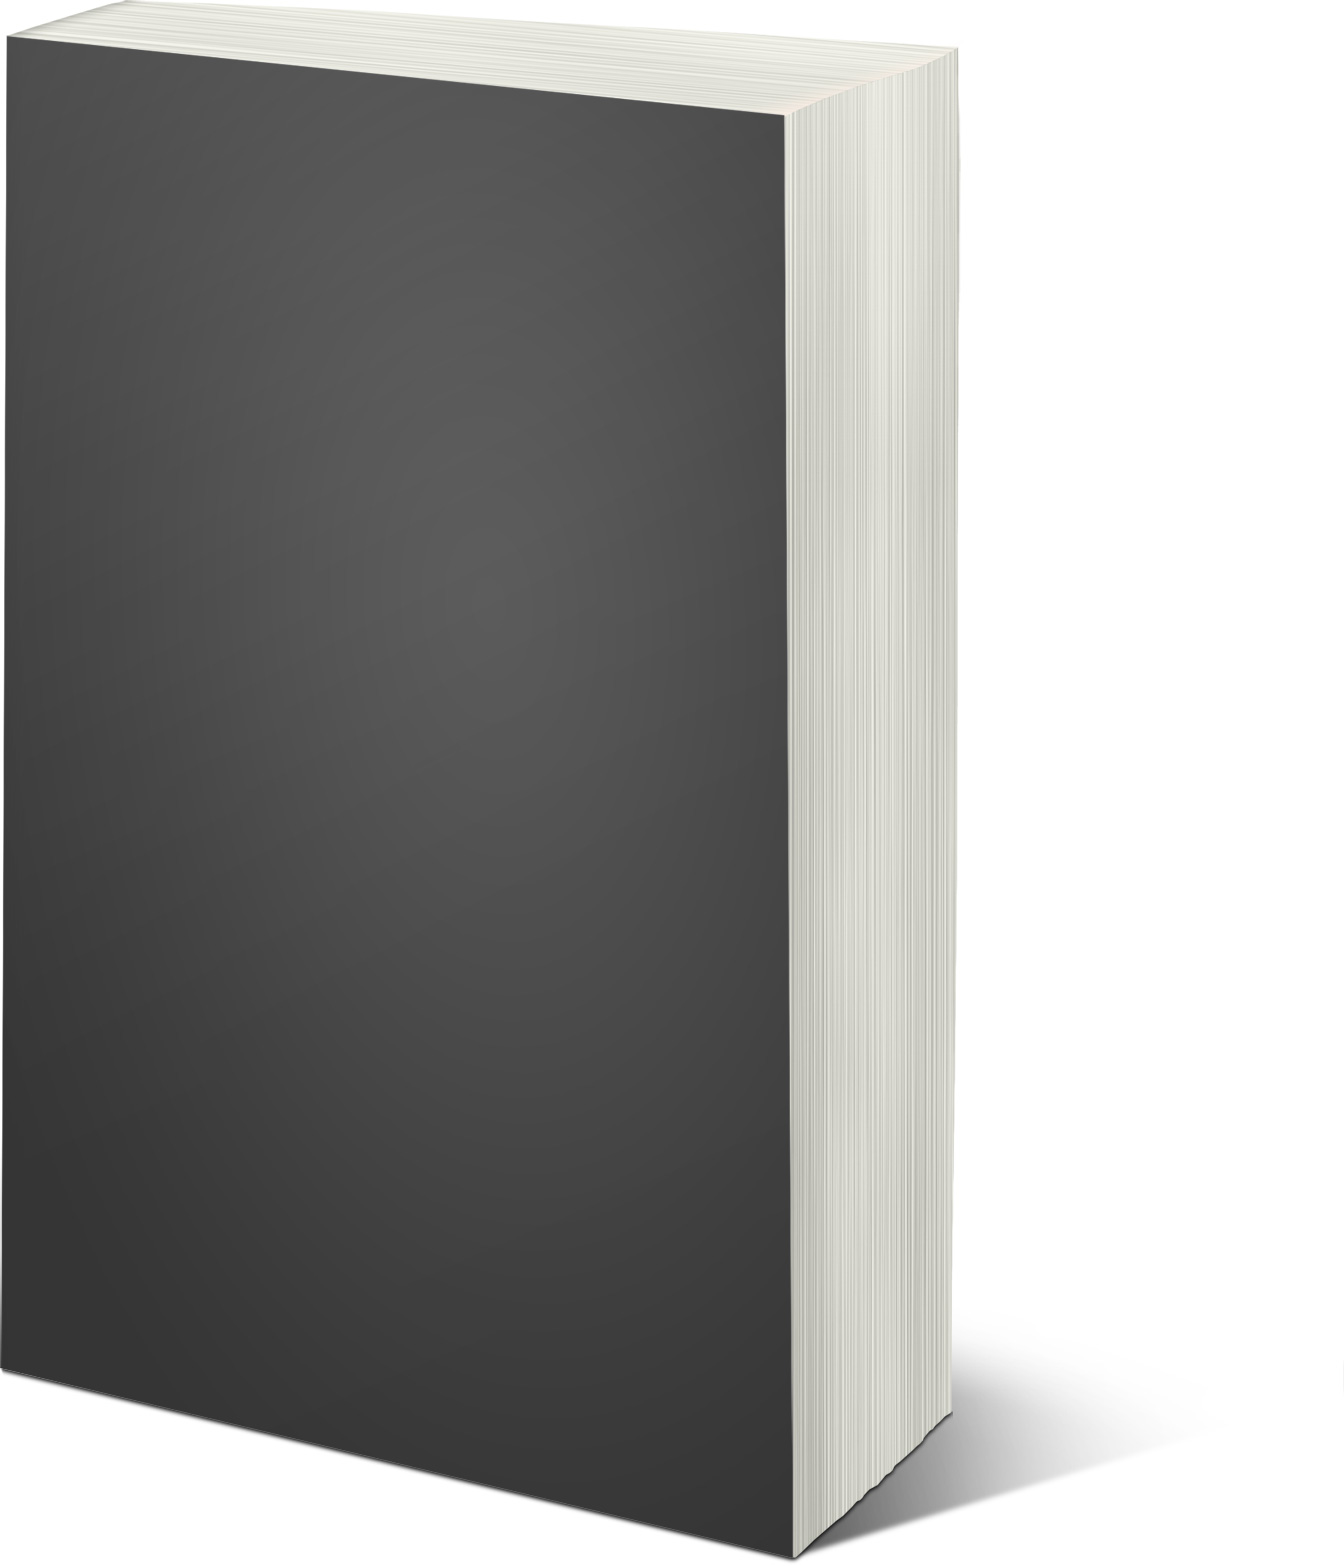 Thick Book Left Mockup